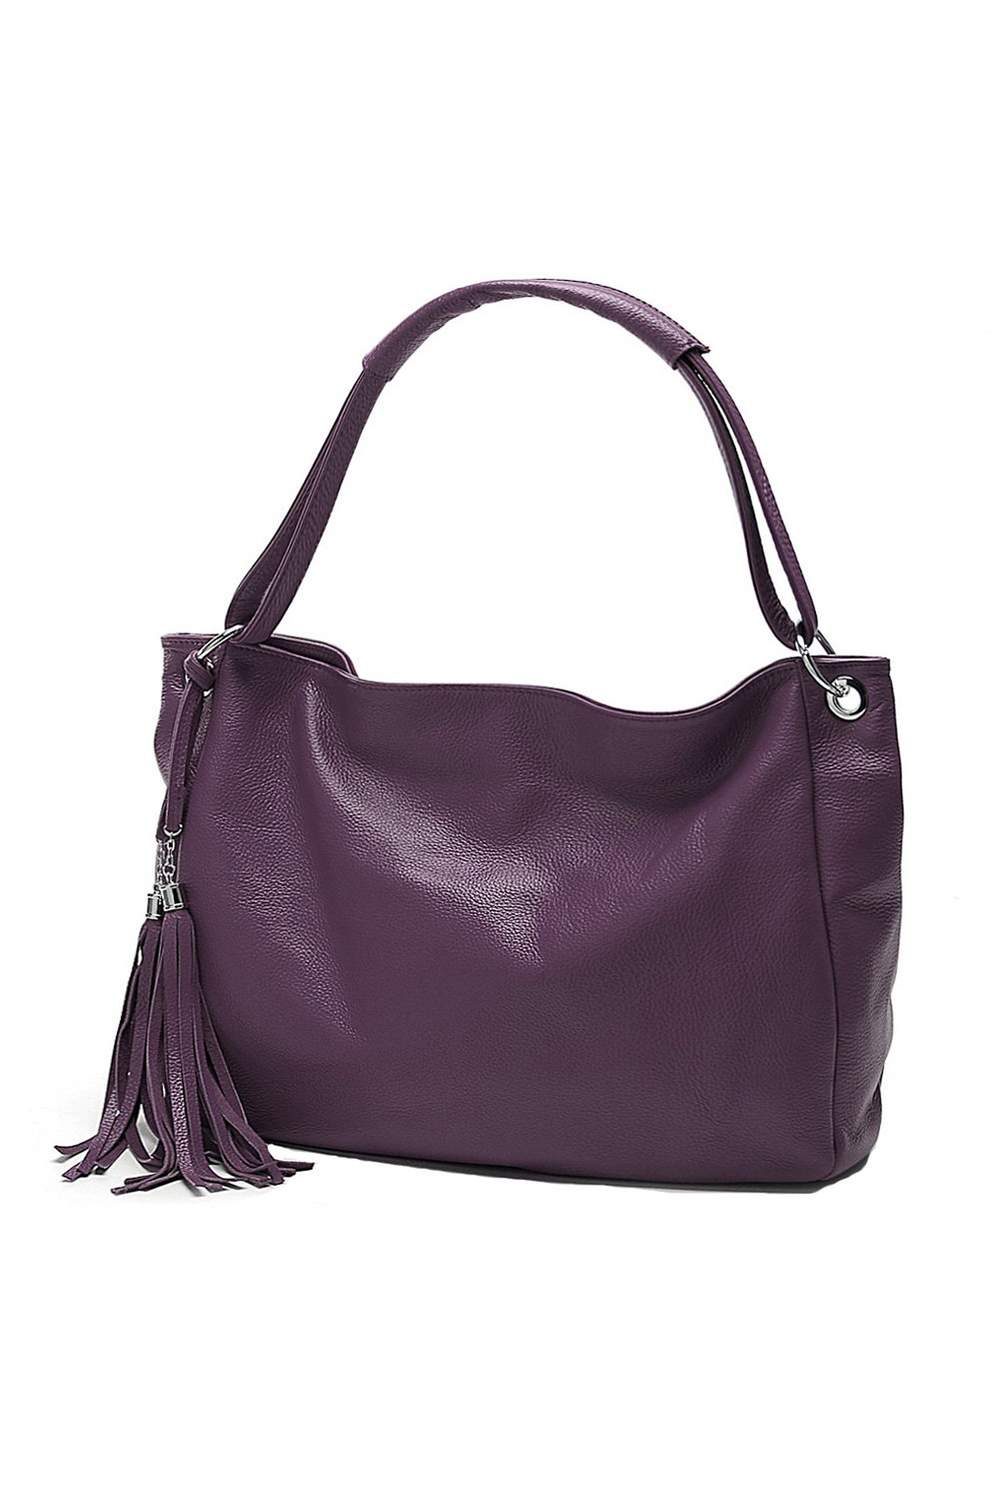 5Pcs Wholesale Women Handbag PU Leather Zipper Closure Tassel Crossbody Shoulder Bag Purple multifunctional pu leather zipper decor shoulder bag